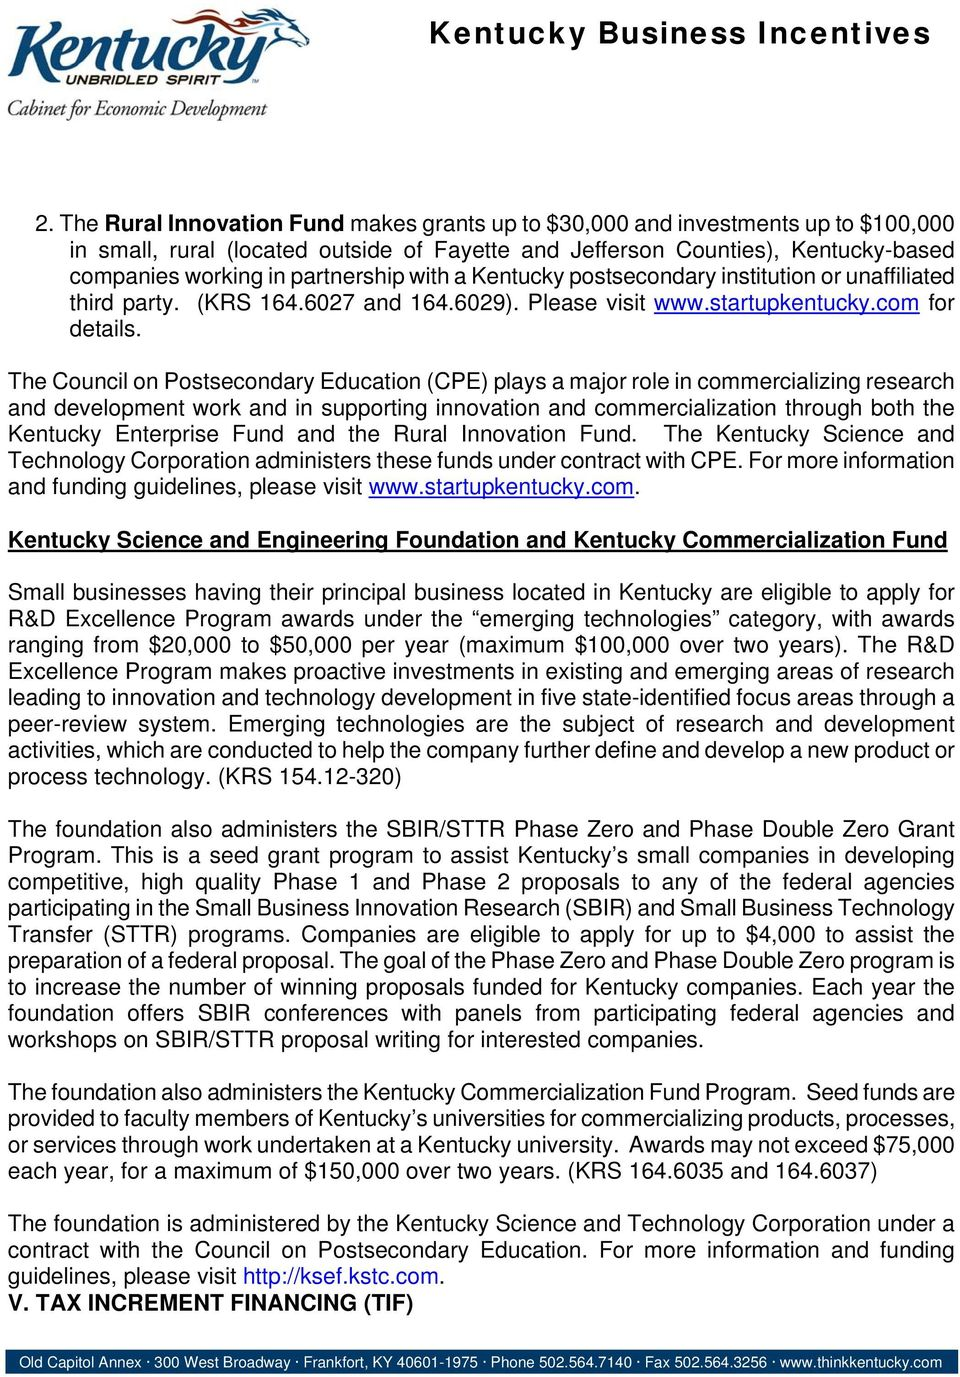 The Council on Postsecondary Education (CPE) plays a major role in commercializing research and development work and in supporting innovation and commercialization through both the Kentucky